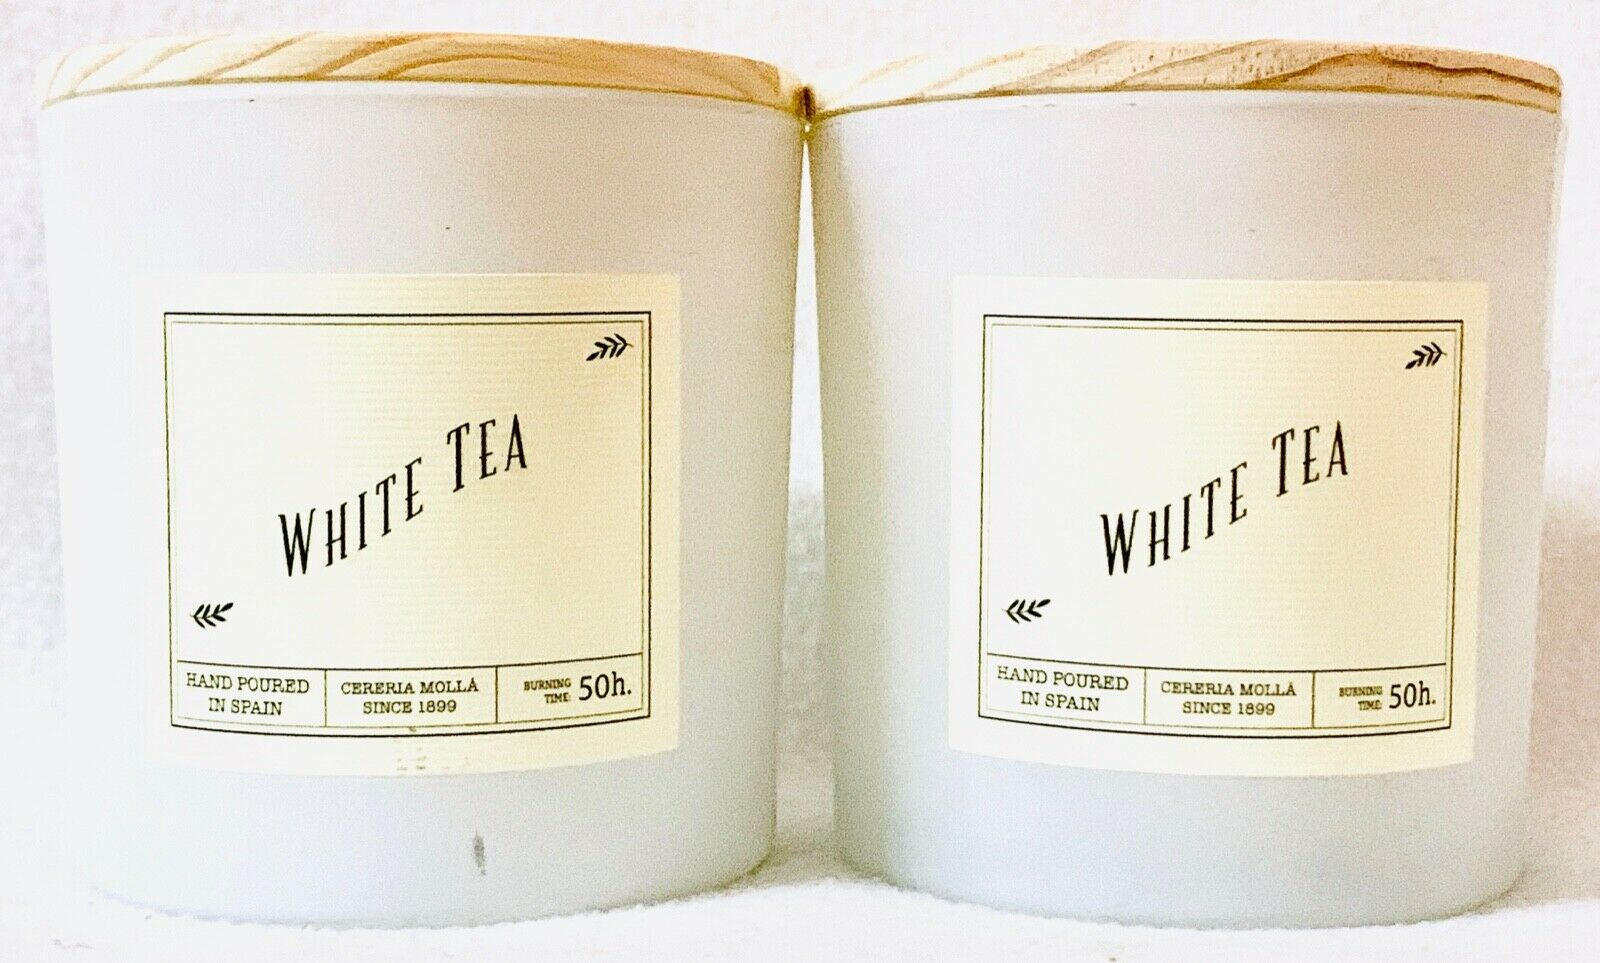 2 Cereria Molla 1899 Weiß TEA 50hr Burn Time Large Candle MADE IN SPAIN 14 oz